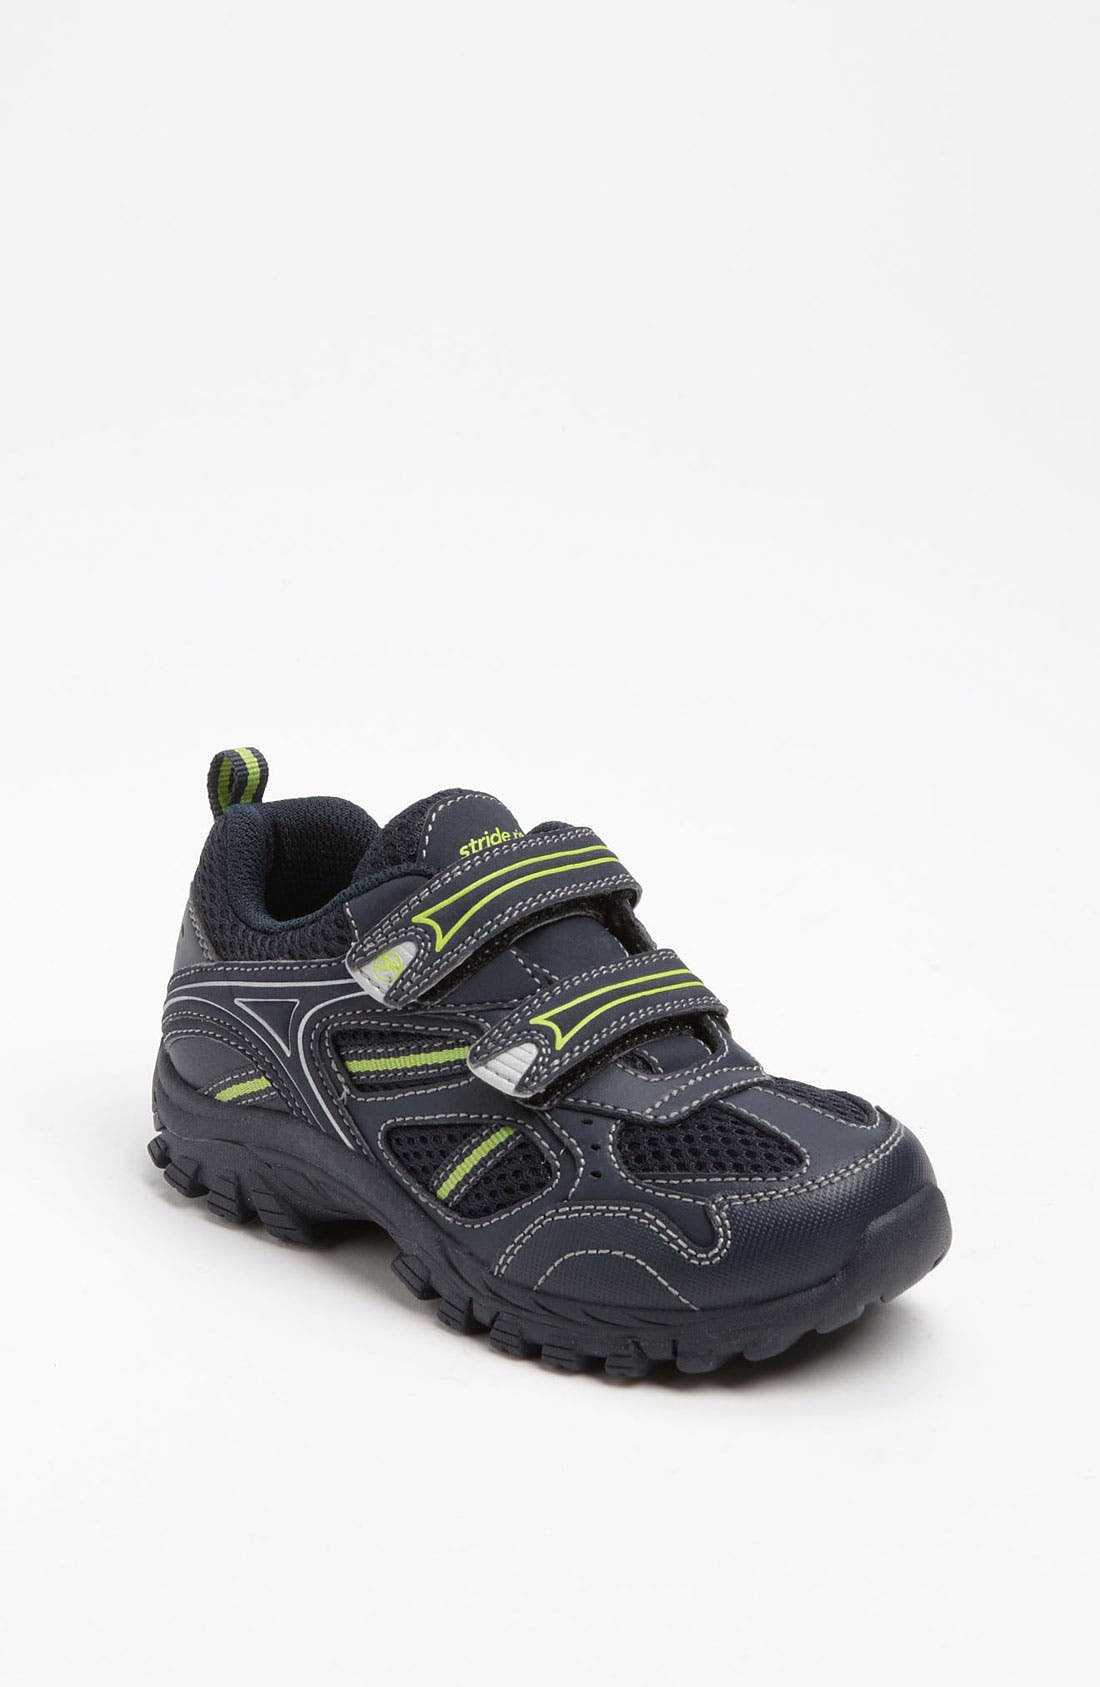 Main Image - Stride Rite 'Dallas' Sneaker (Baby, Walker, Toddler & Little Kid)